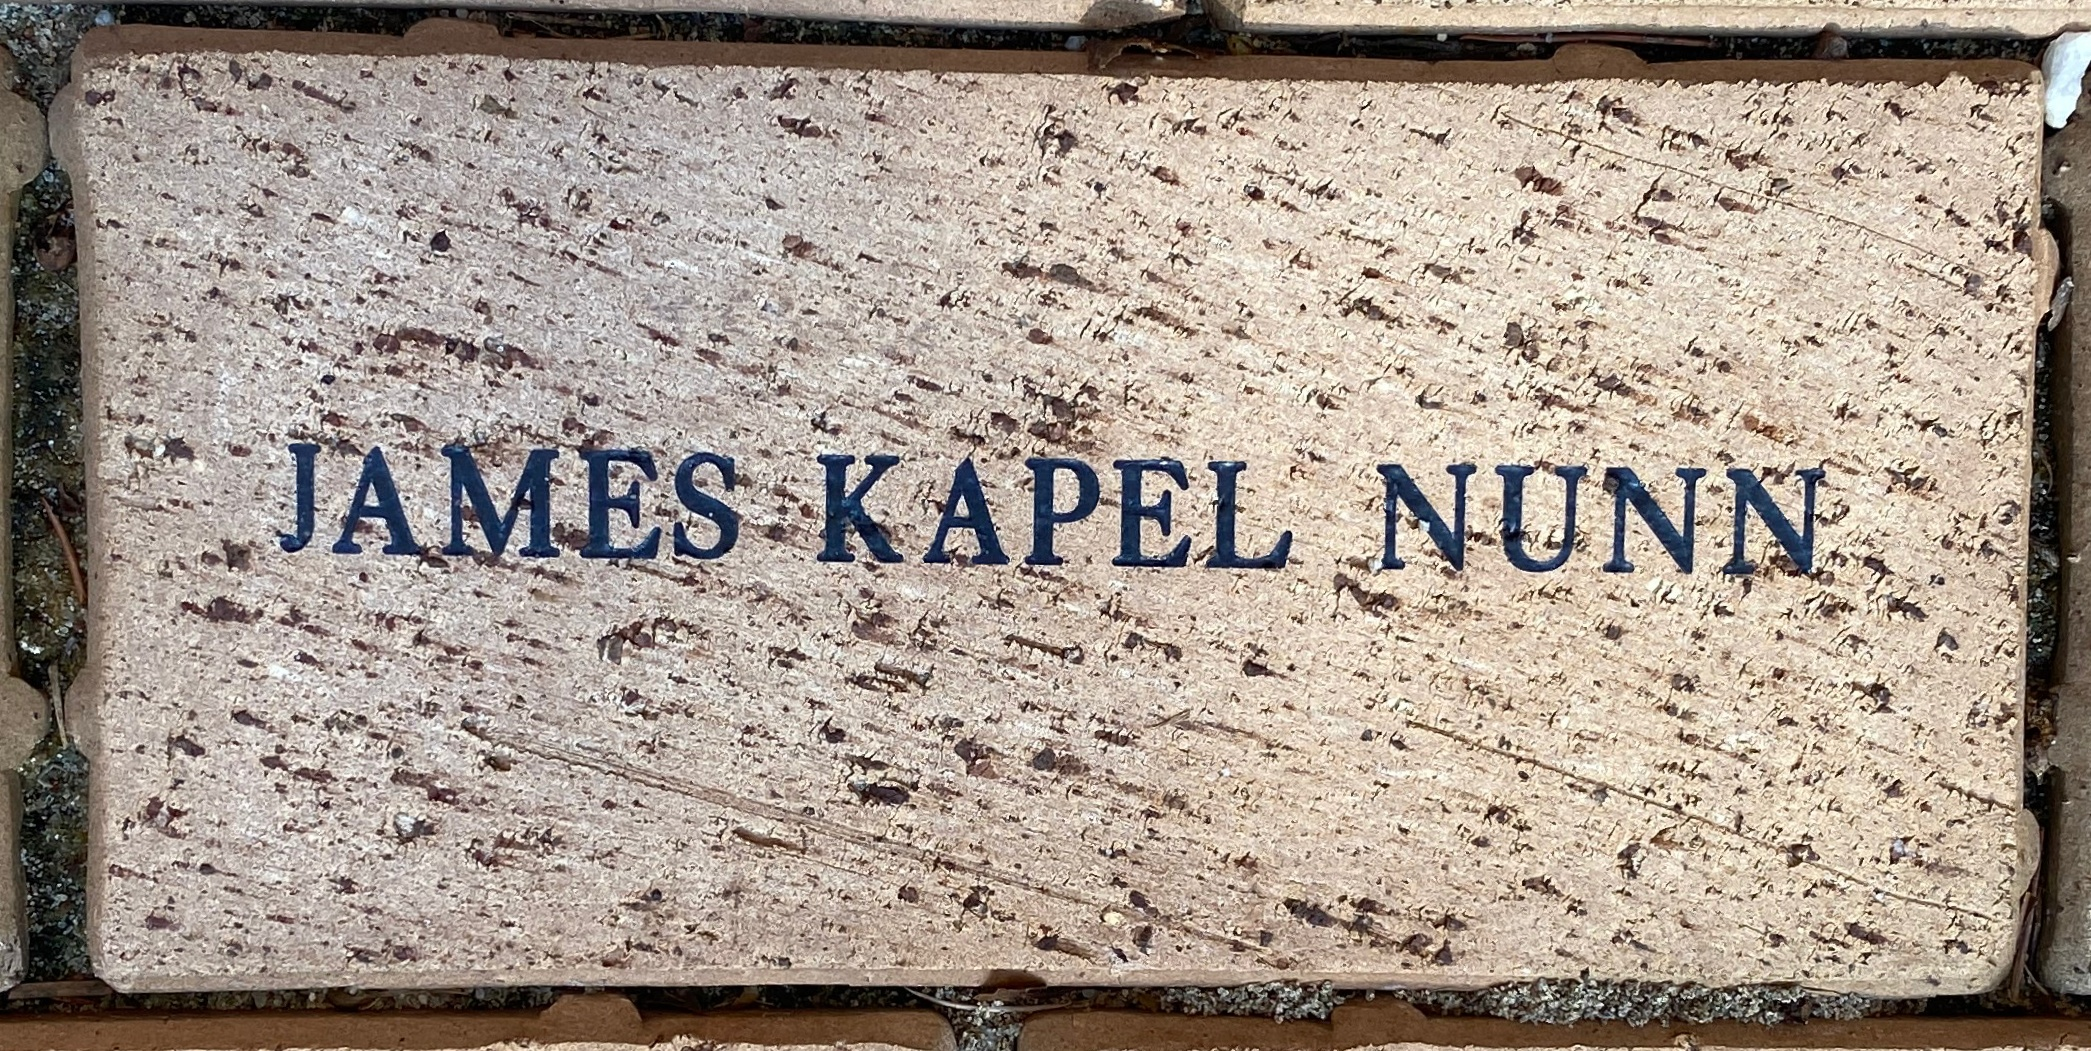 JAMES KAPEL NUNN